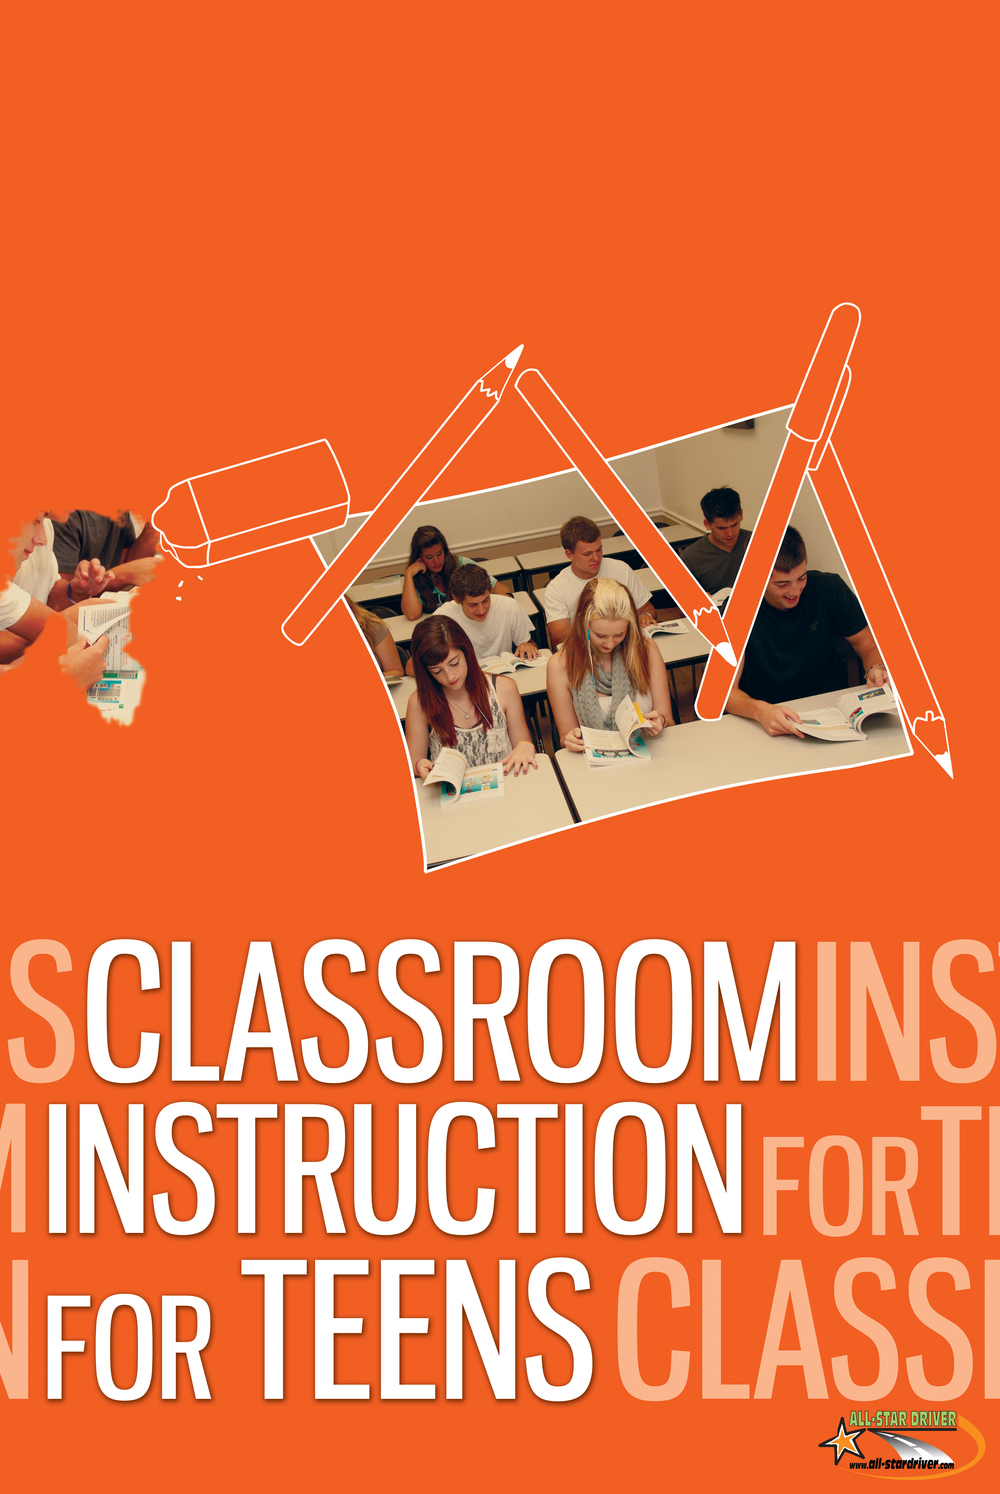 ASD Poster Classroom Instruction for Teens.jpg